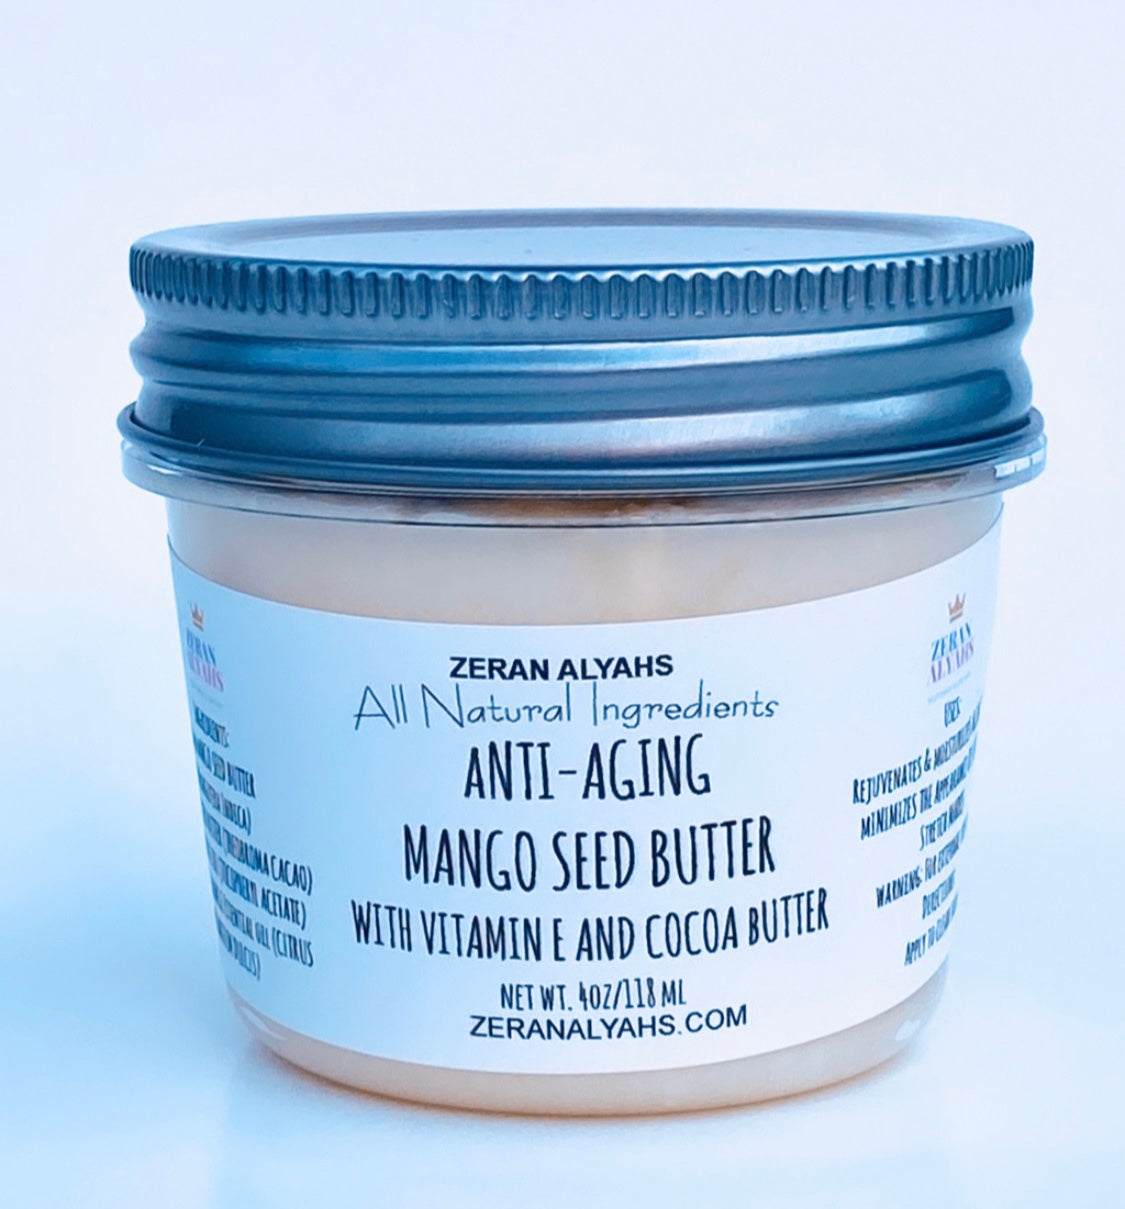 Anti-aging Mango Seed Butter with Vitamin E and Cocoa Butter